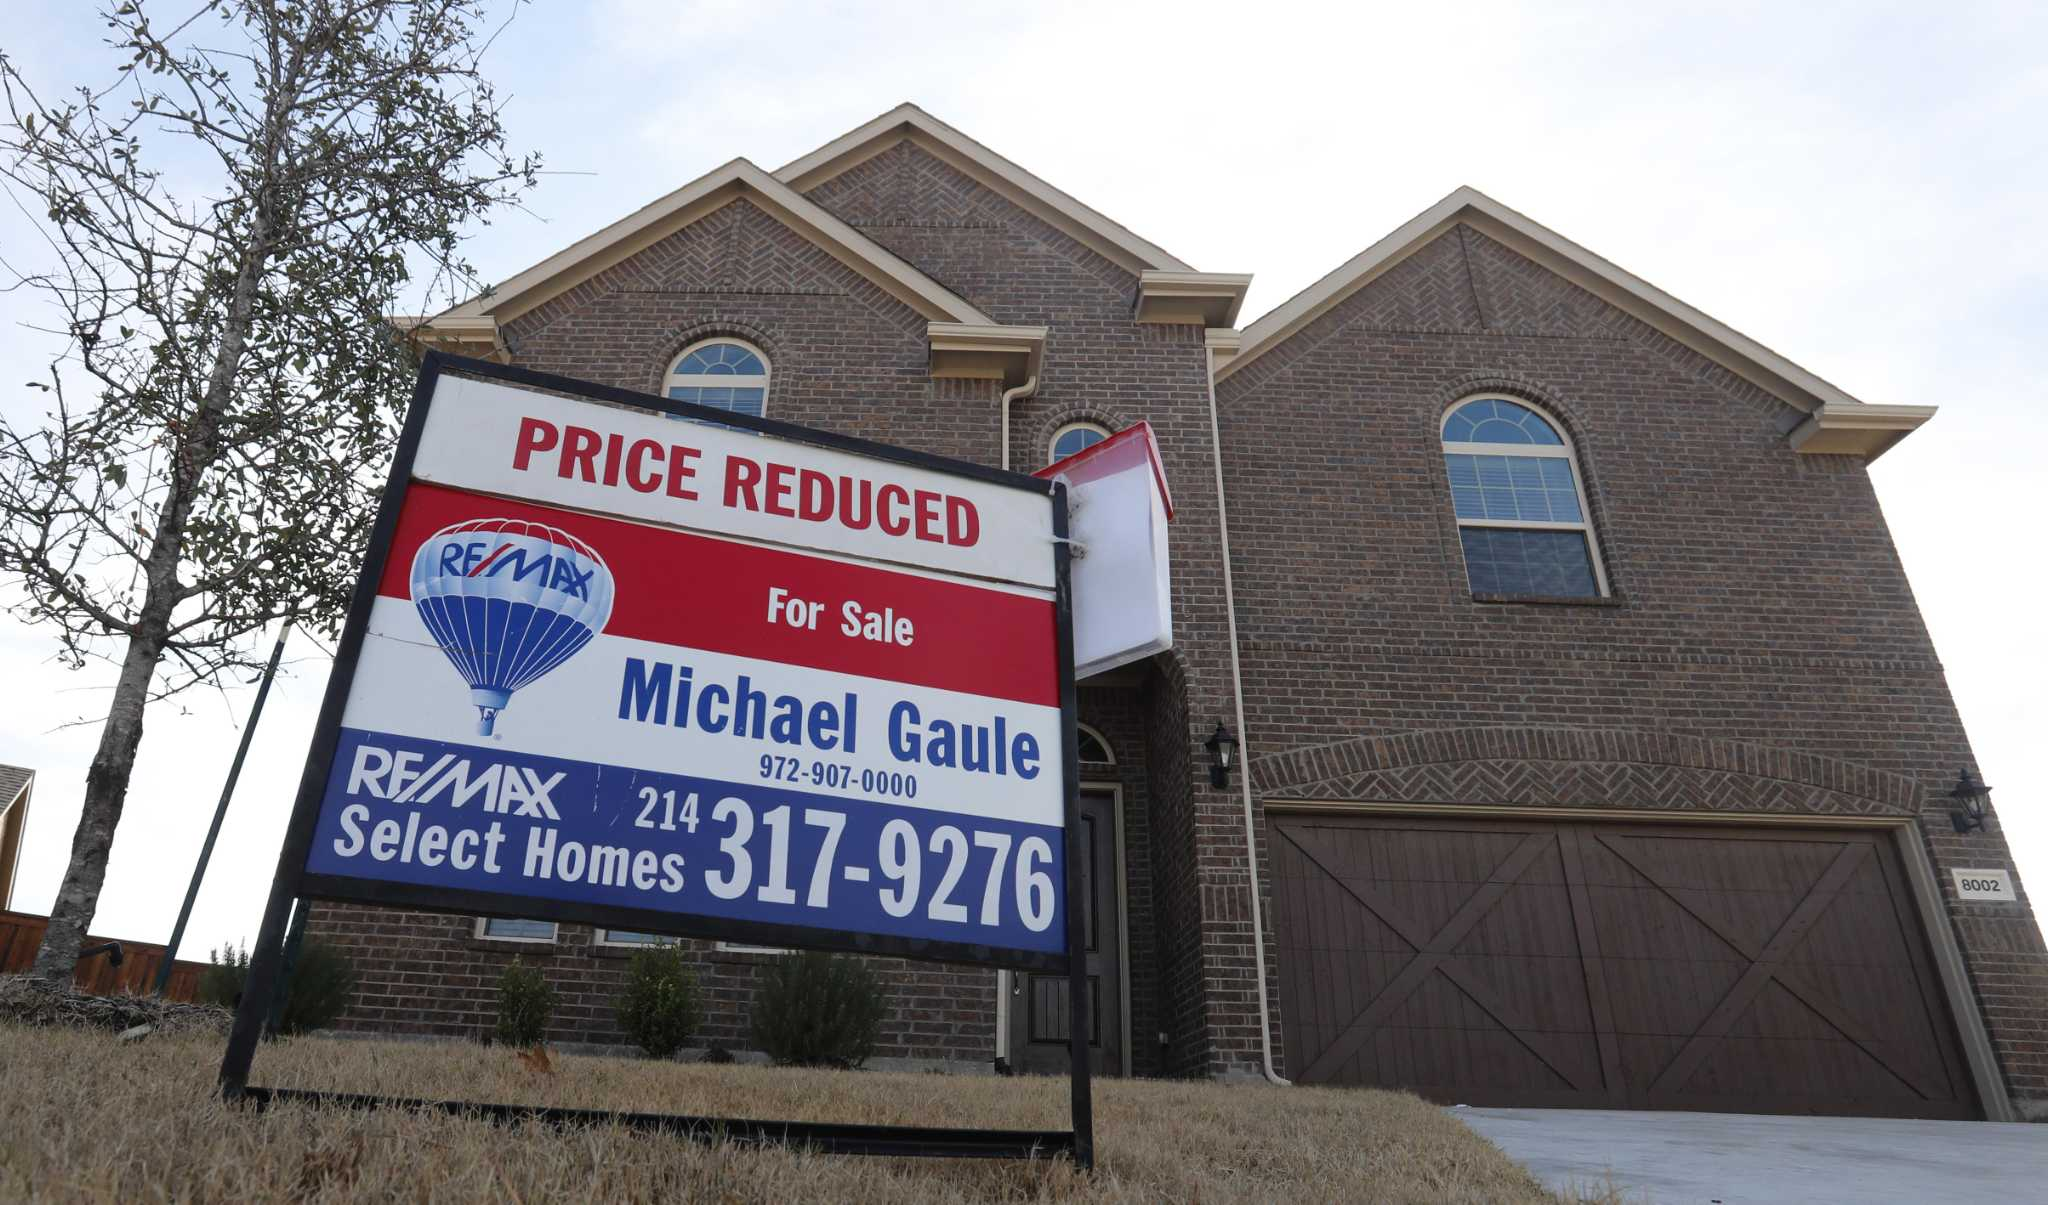 How do I choose a mortgage lender when buying a home in Houston?